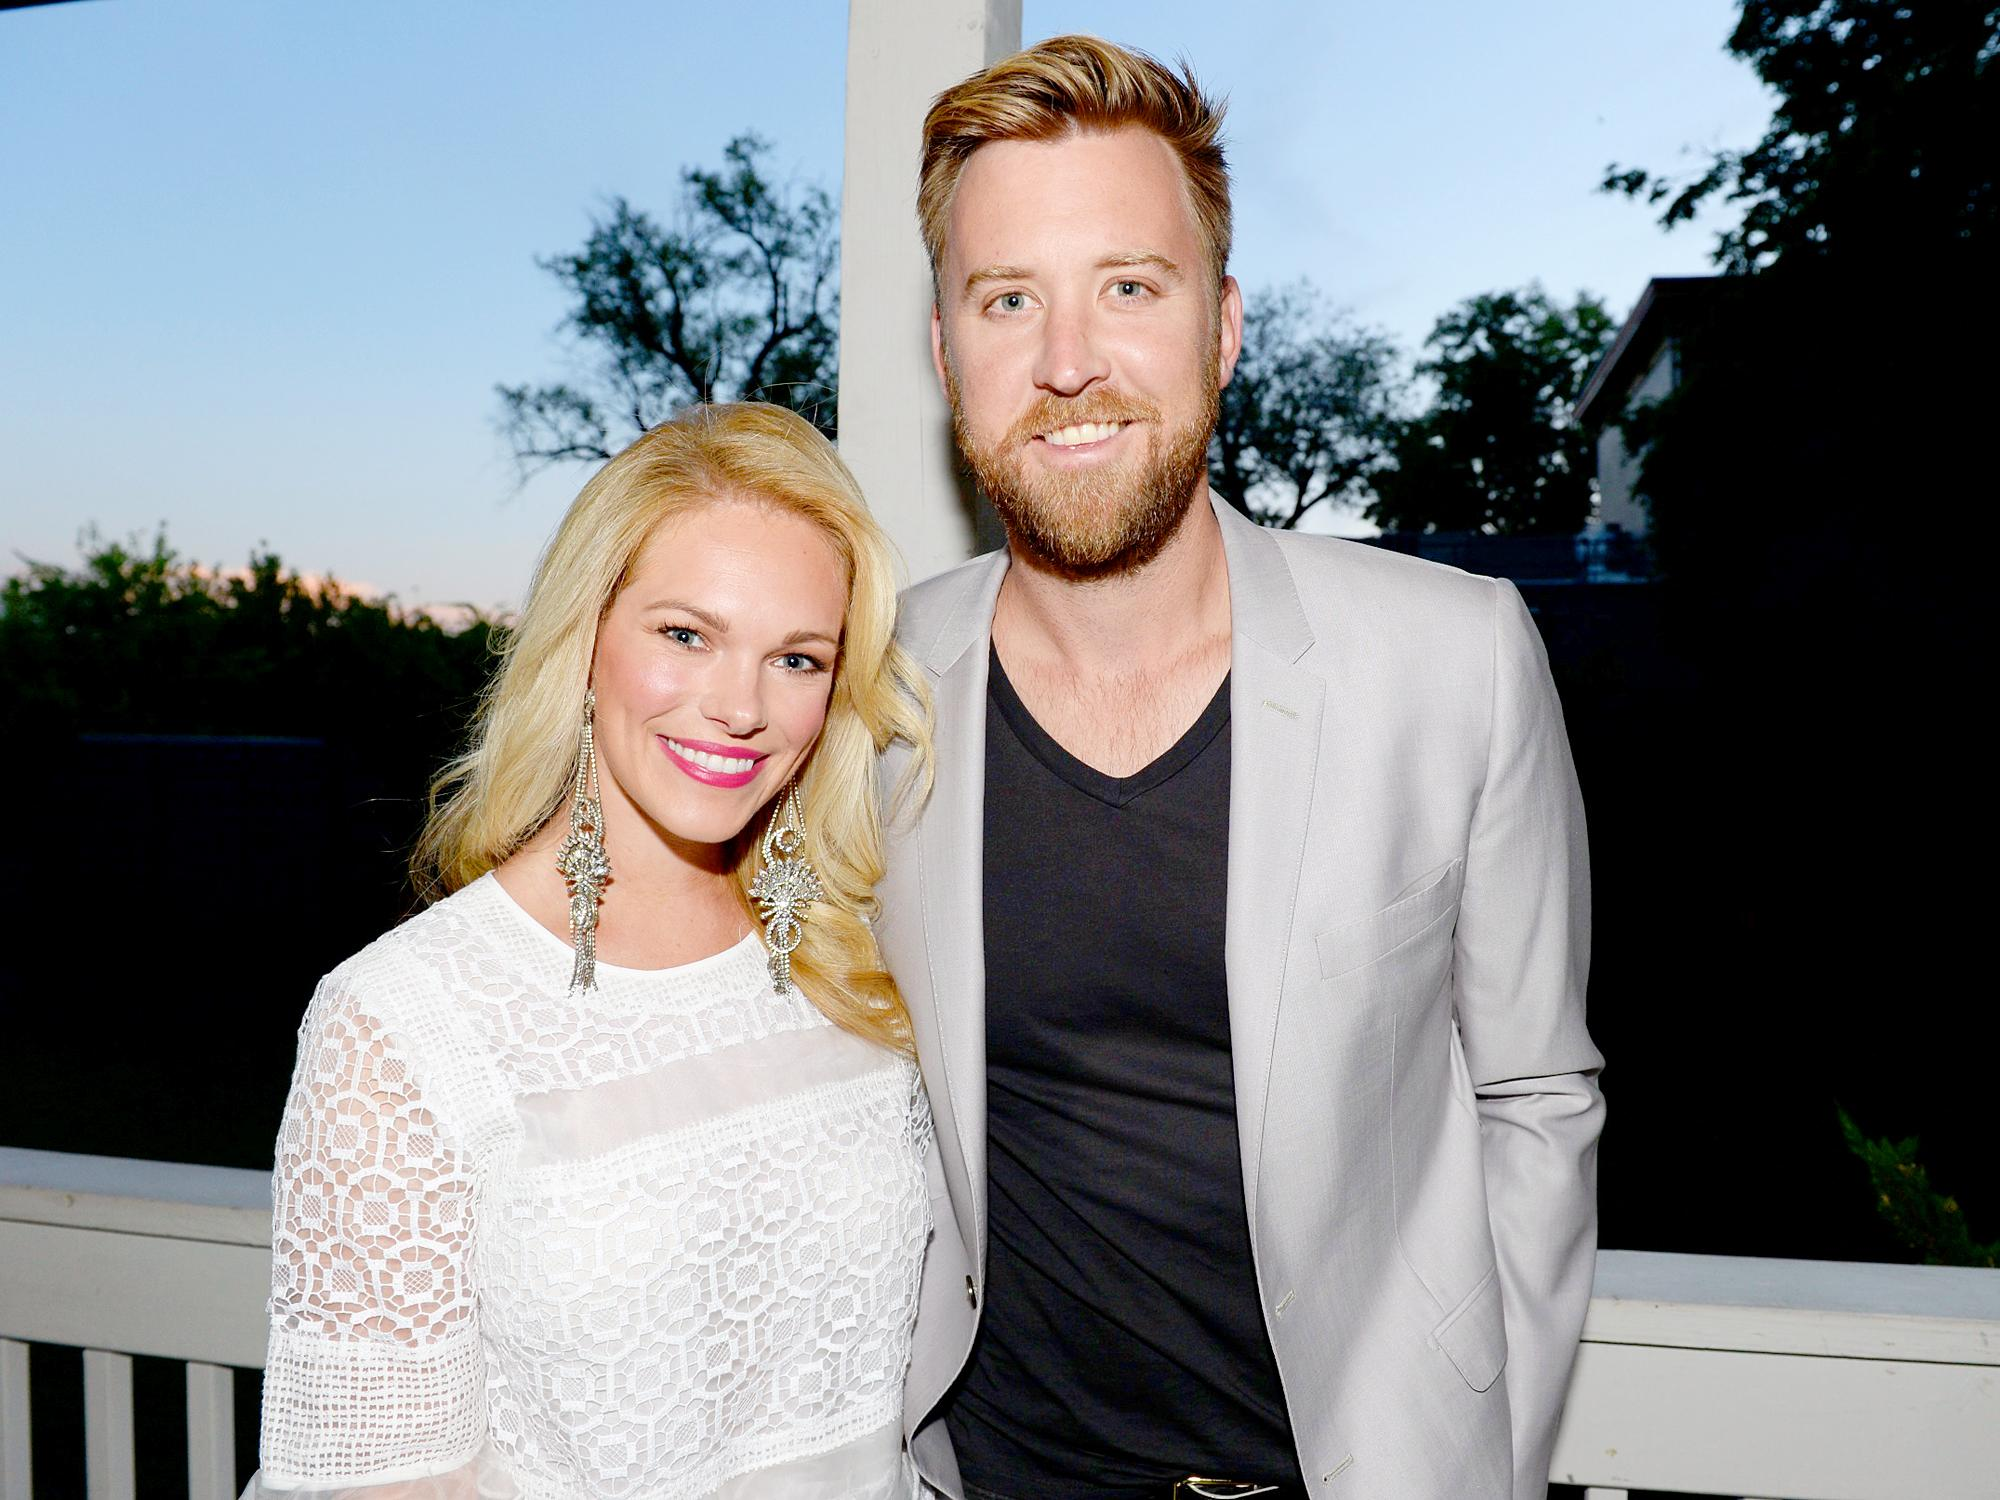 Lady Antebellum's Charles Kelley, Wife Cassie Welcome First Baby: 'We Feel Like Our Life Just Began'